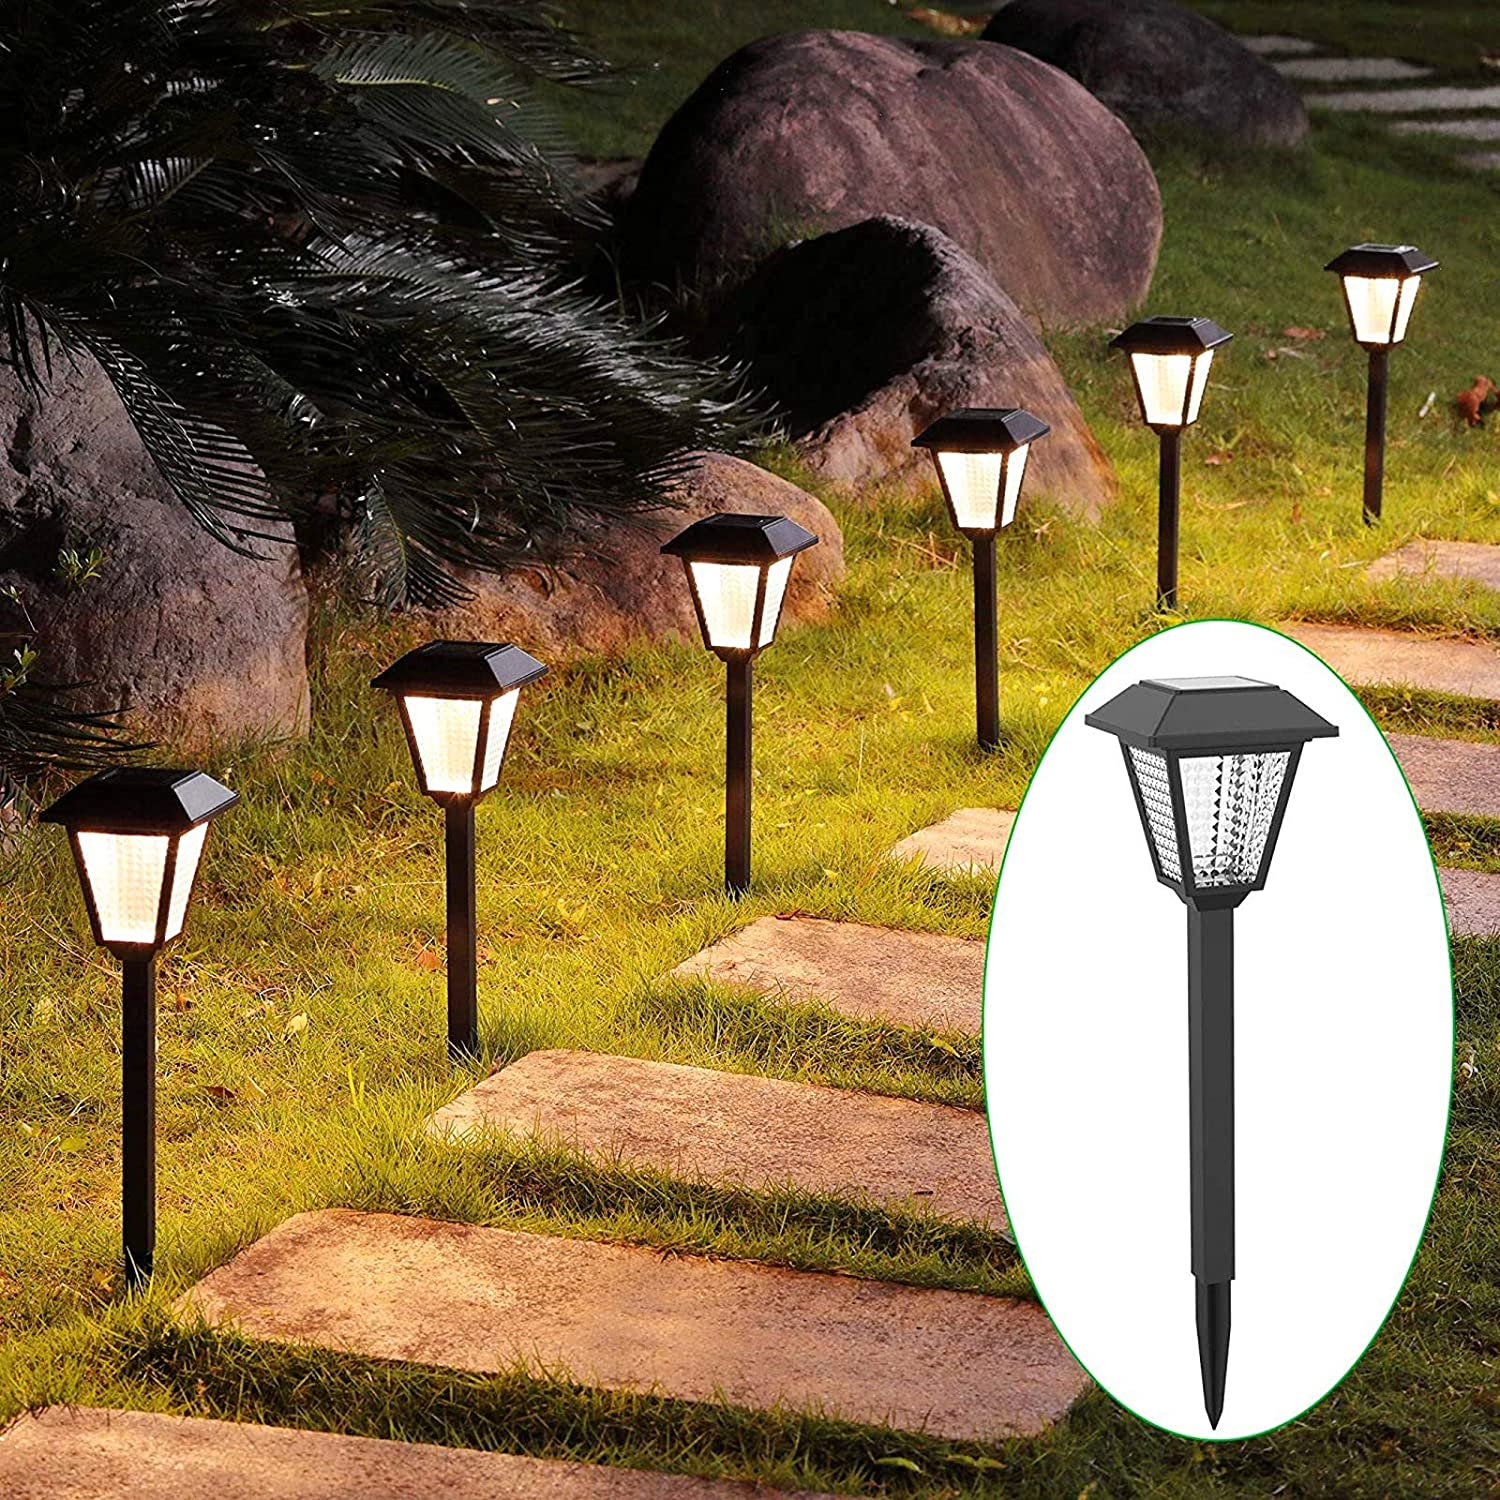 MAGGIFT 6 Pack High Lumen Solar Powered Pathway Lights, Outdoor Landscape Lights, Waterproof Light for Lawn, Patio, Yard, Garden, Walkway, Deck, Driveway, Warm White